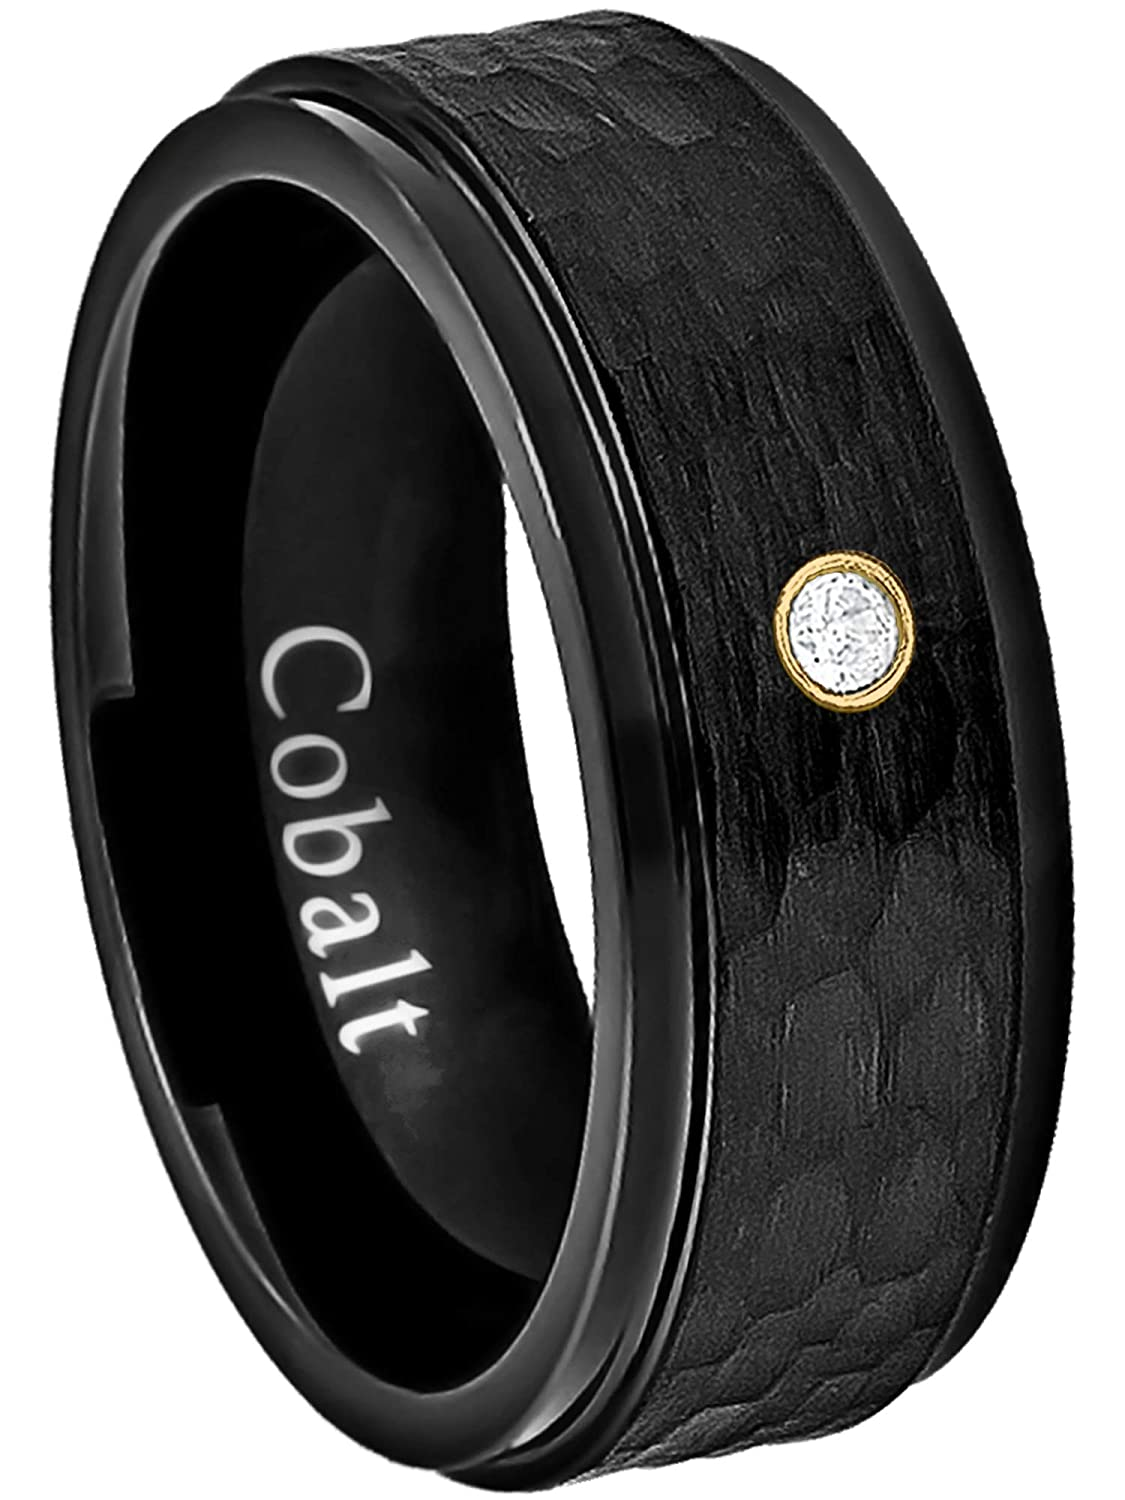 Jewelry Avalanche 8MM Comfort Fit Hammered Black Ion Stepped Edge Mens Cobalt Chrome Wedding Band April Birthstone Ring 0.07ct Diamond Cobalt Ring